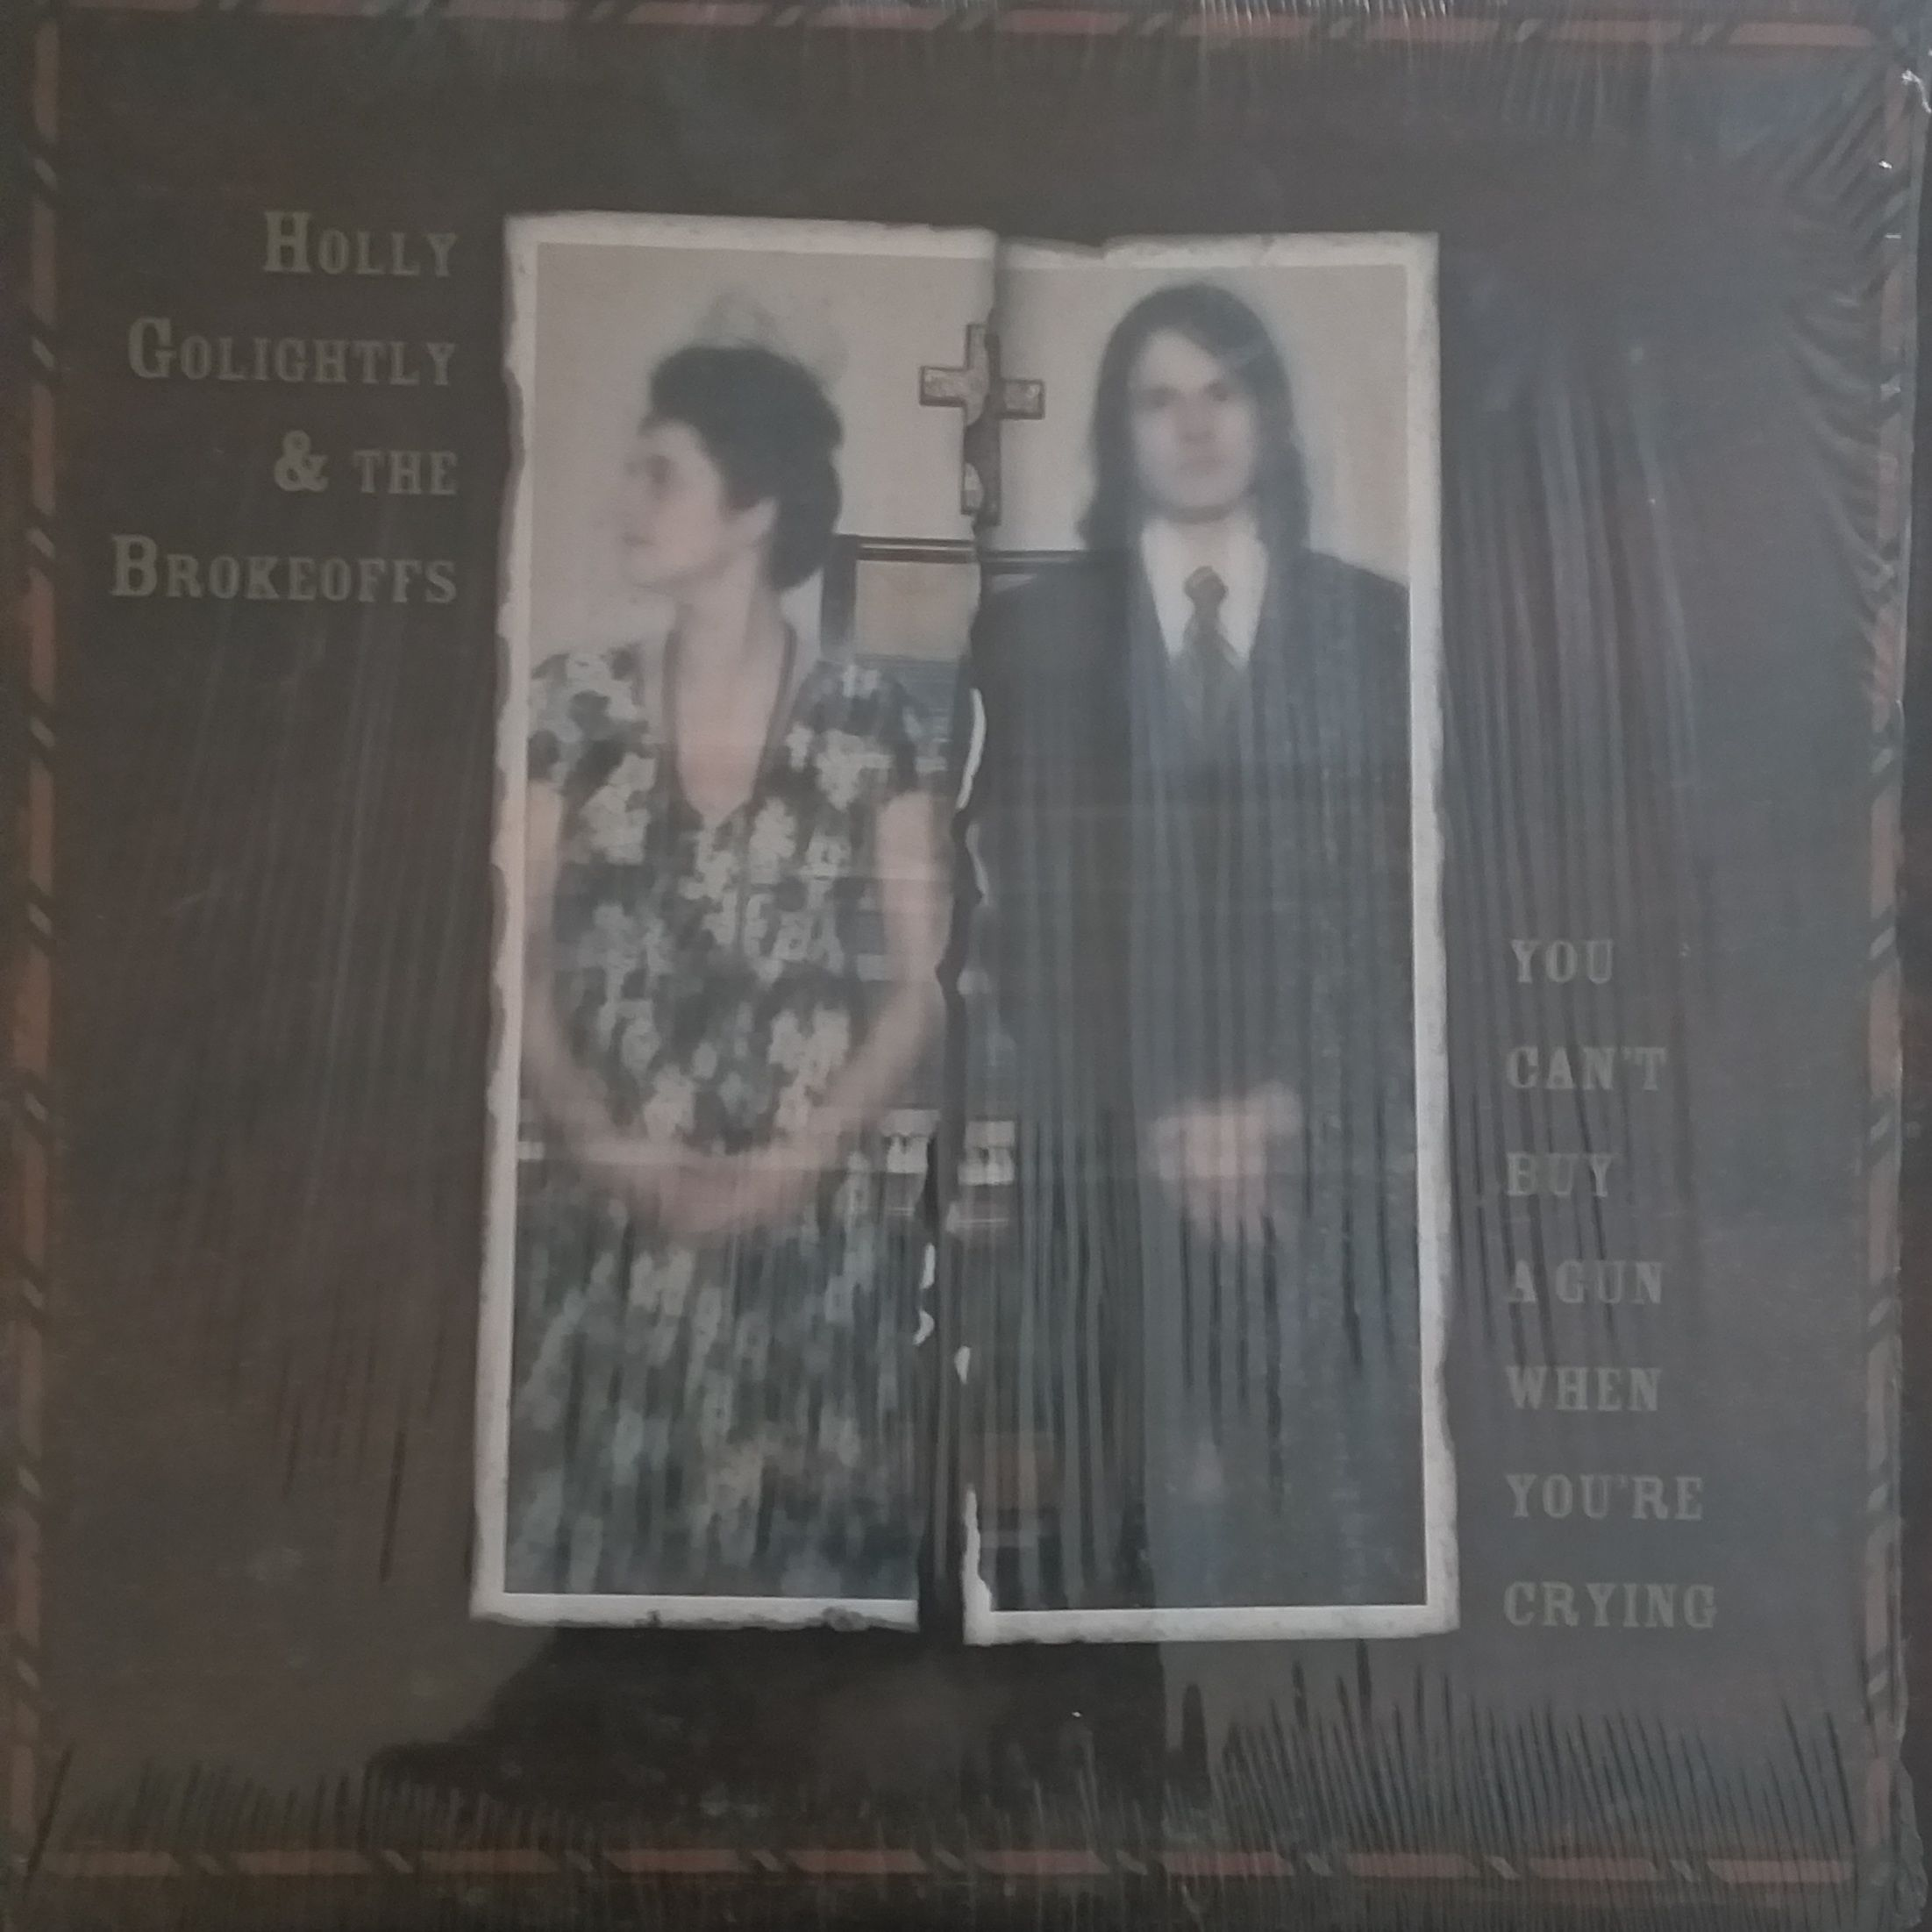 Holly Golightly & the brokeoffs You can't buy a gun when you're crying LP undefined